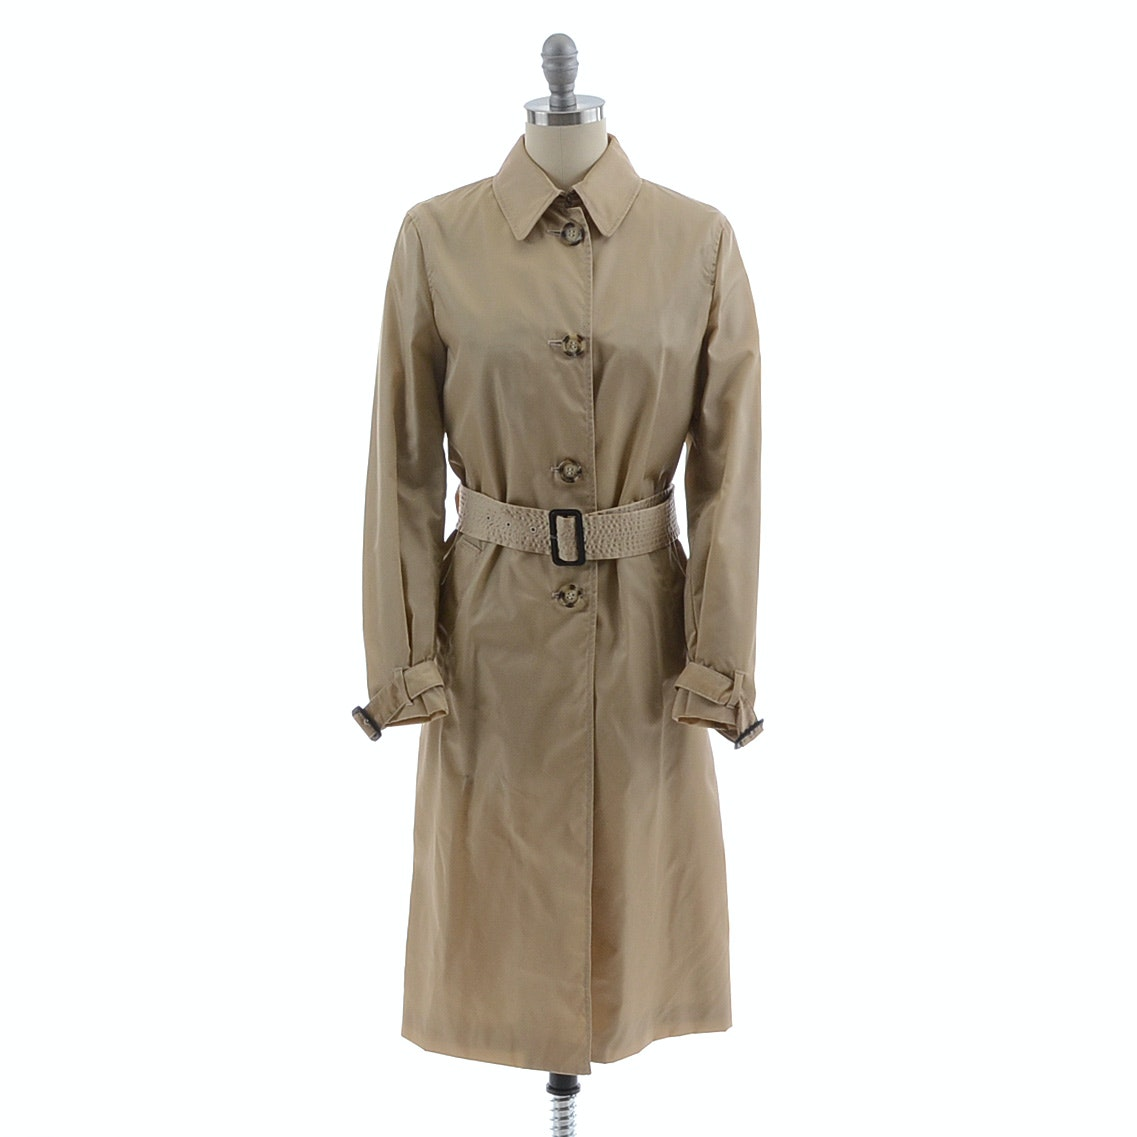 Prada Impermeable Nylon Trench in Corda with Tie Belt and Leather Buckles, New With Tags